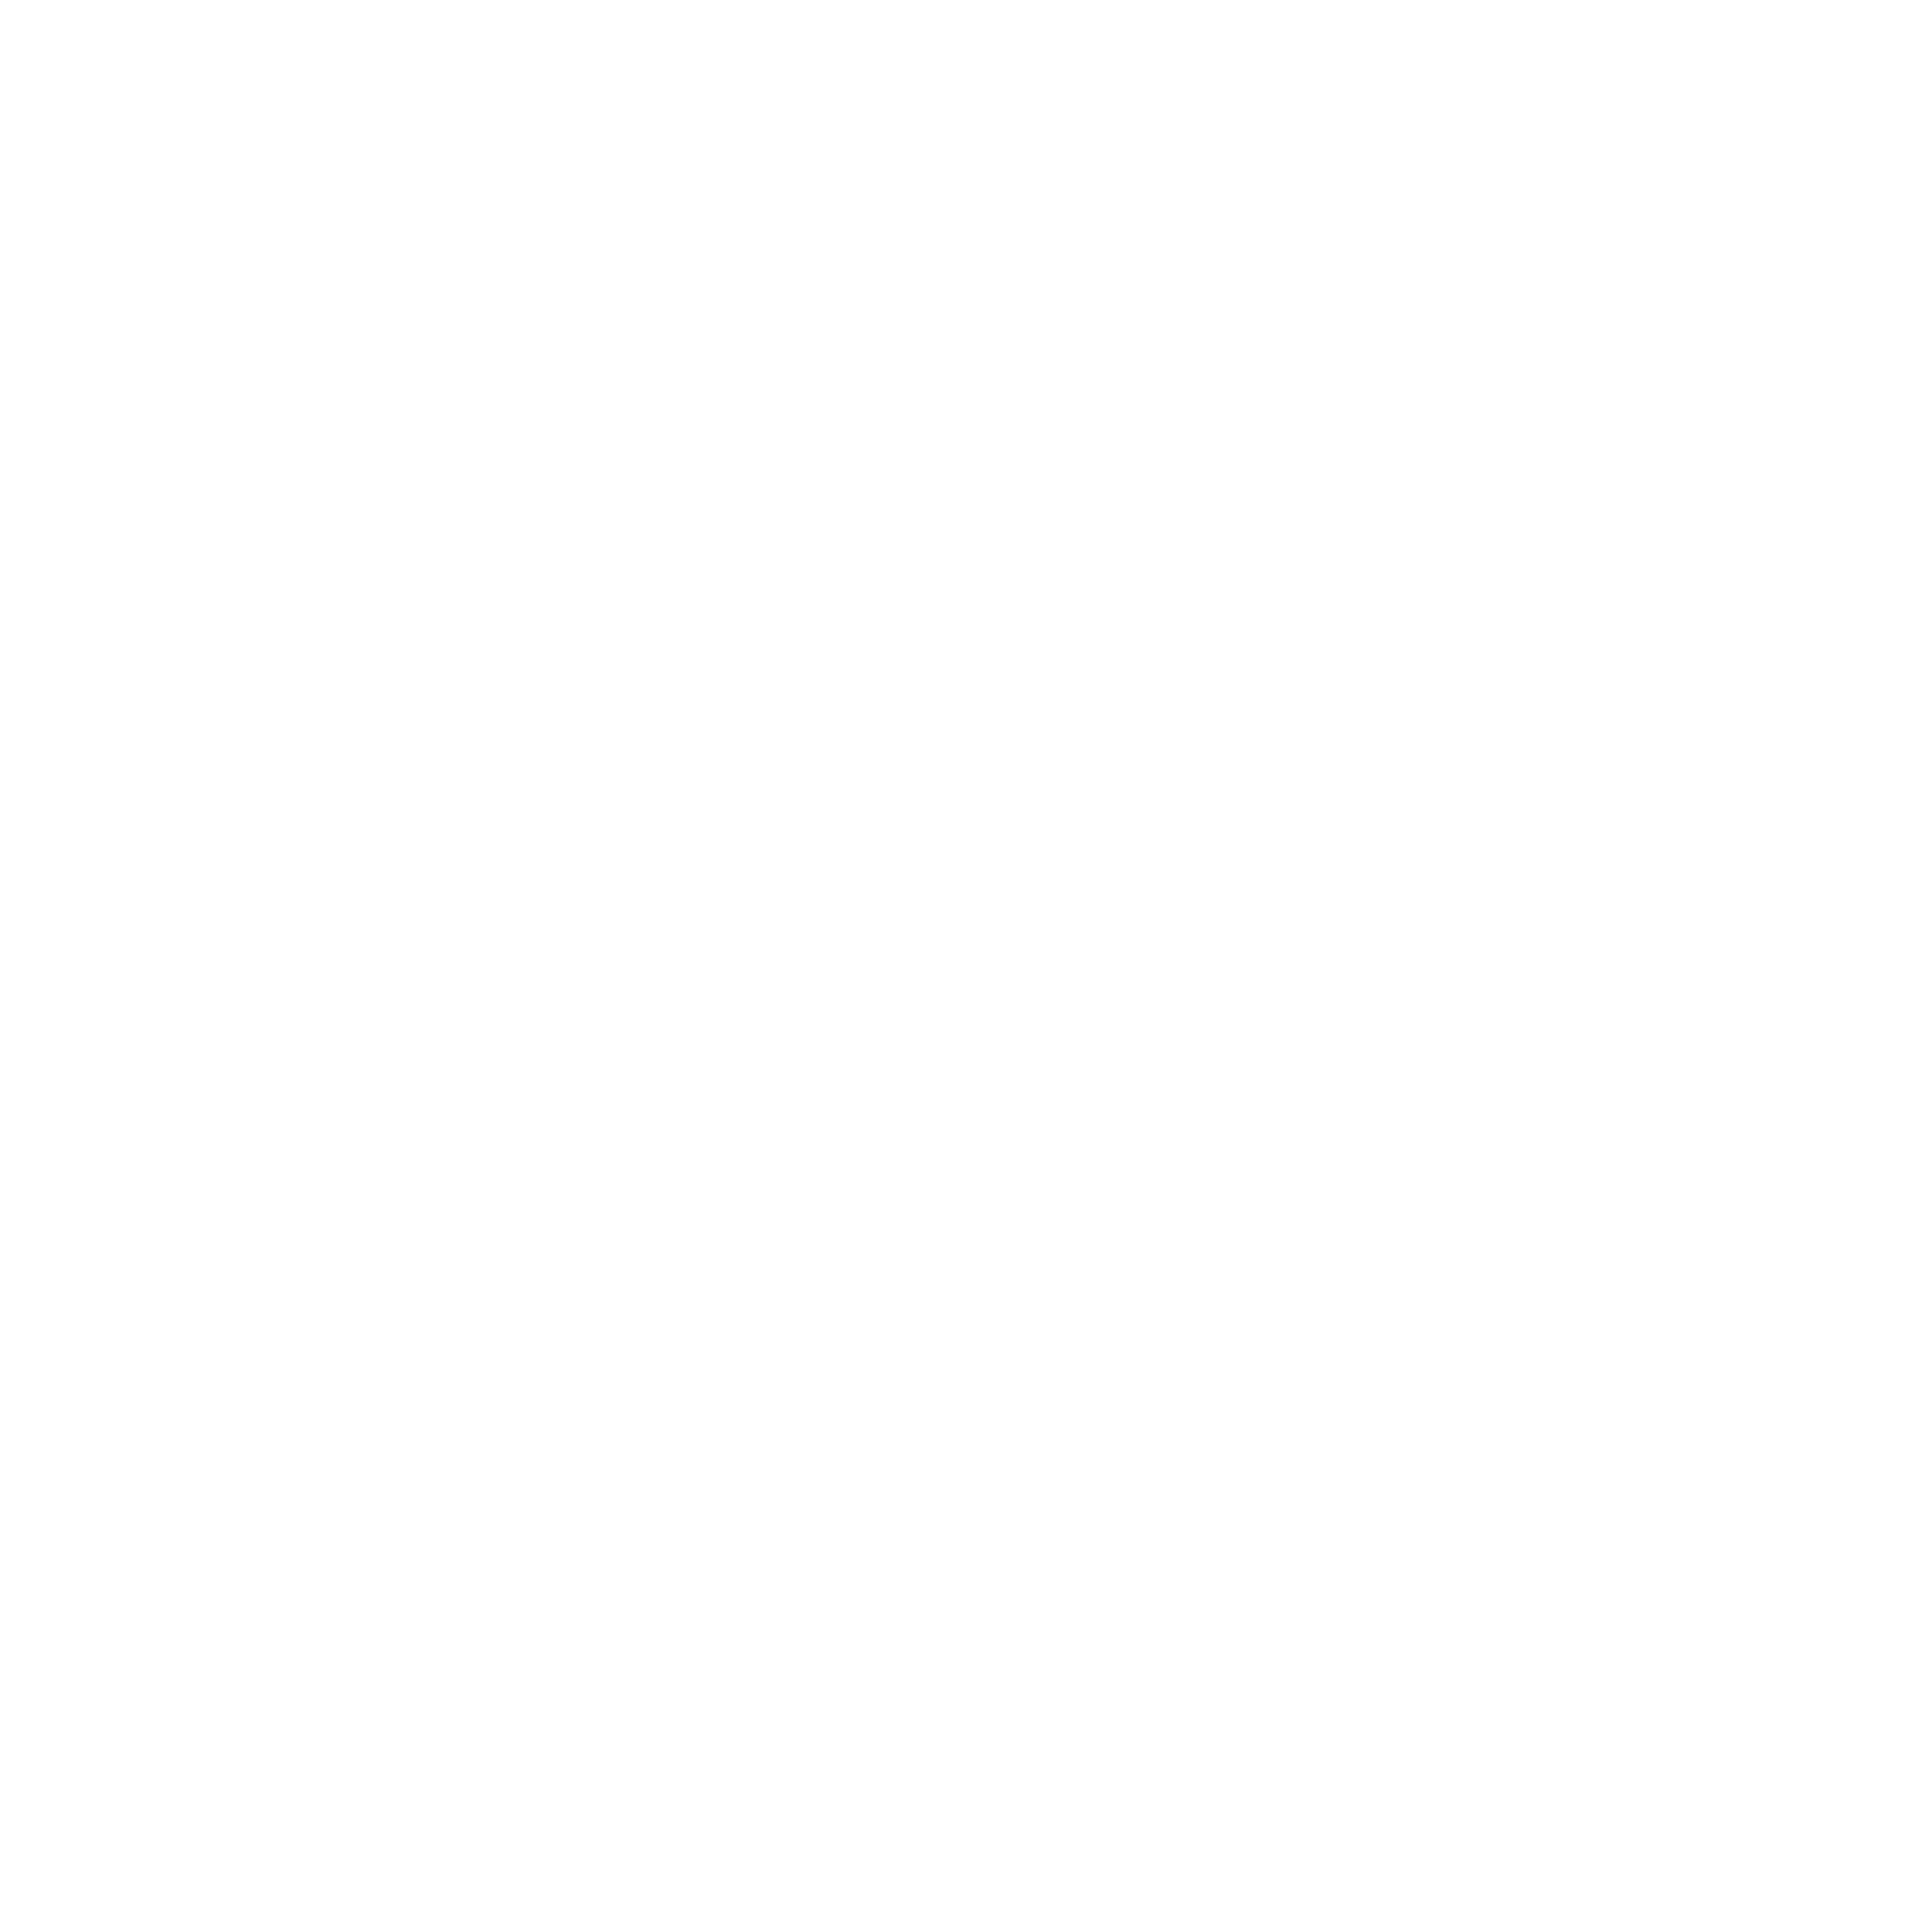 White Snowy Snowflake PNG Image